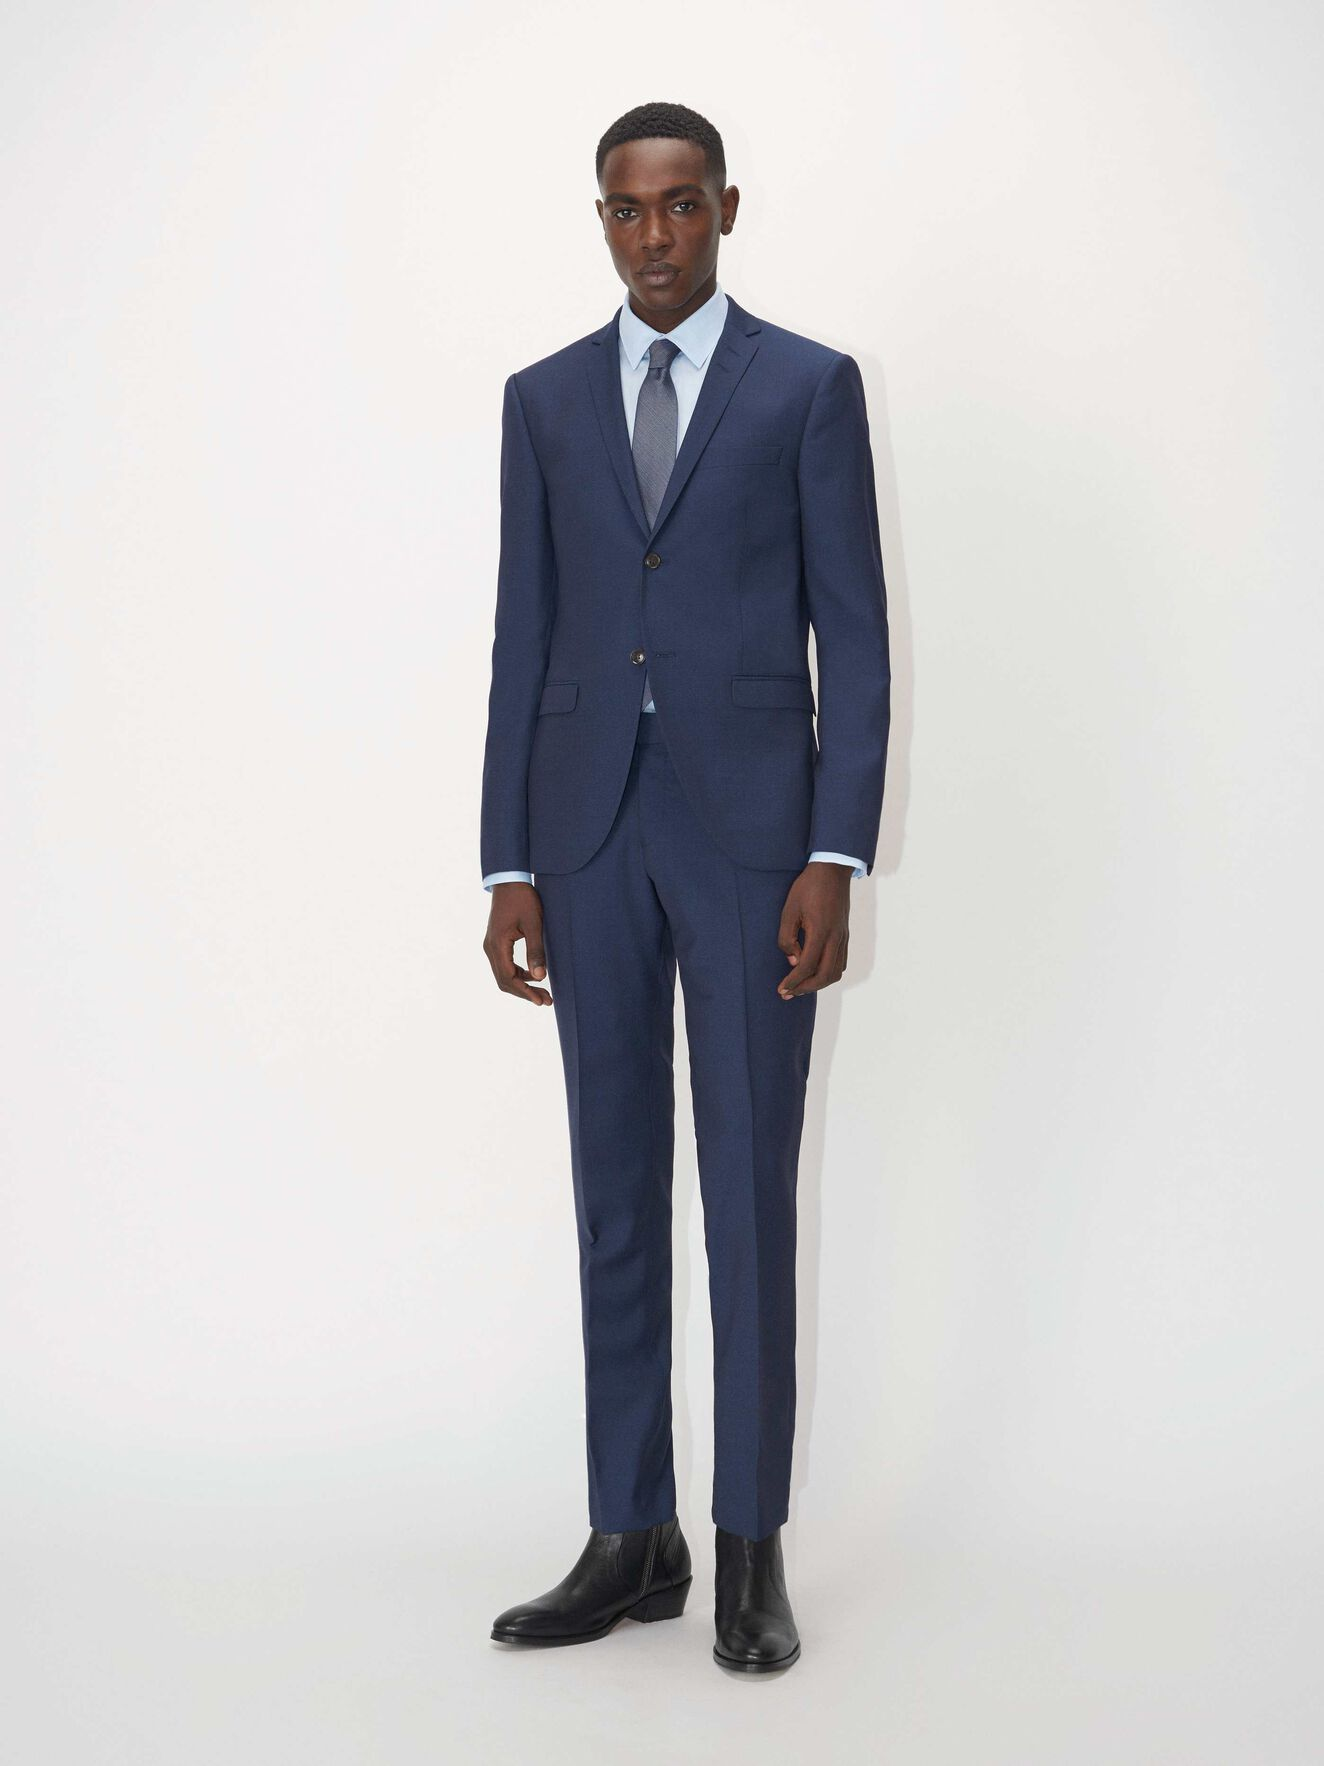 S.Jile Suit in Sky Captain from Tiger of Sweden